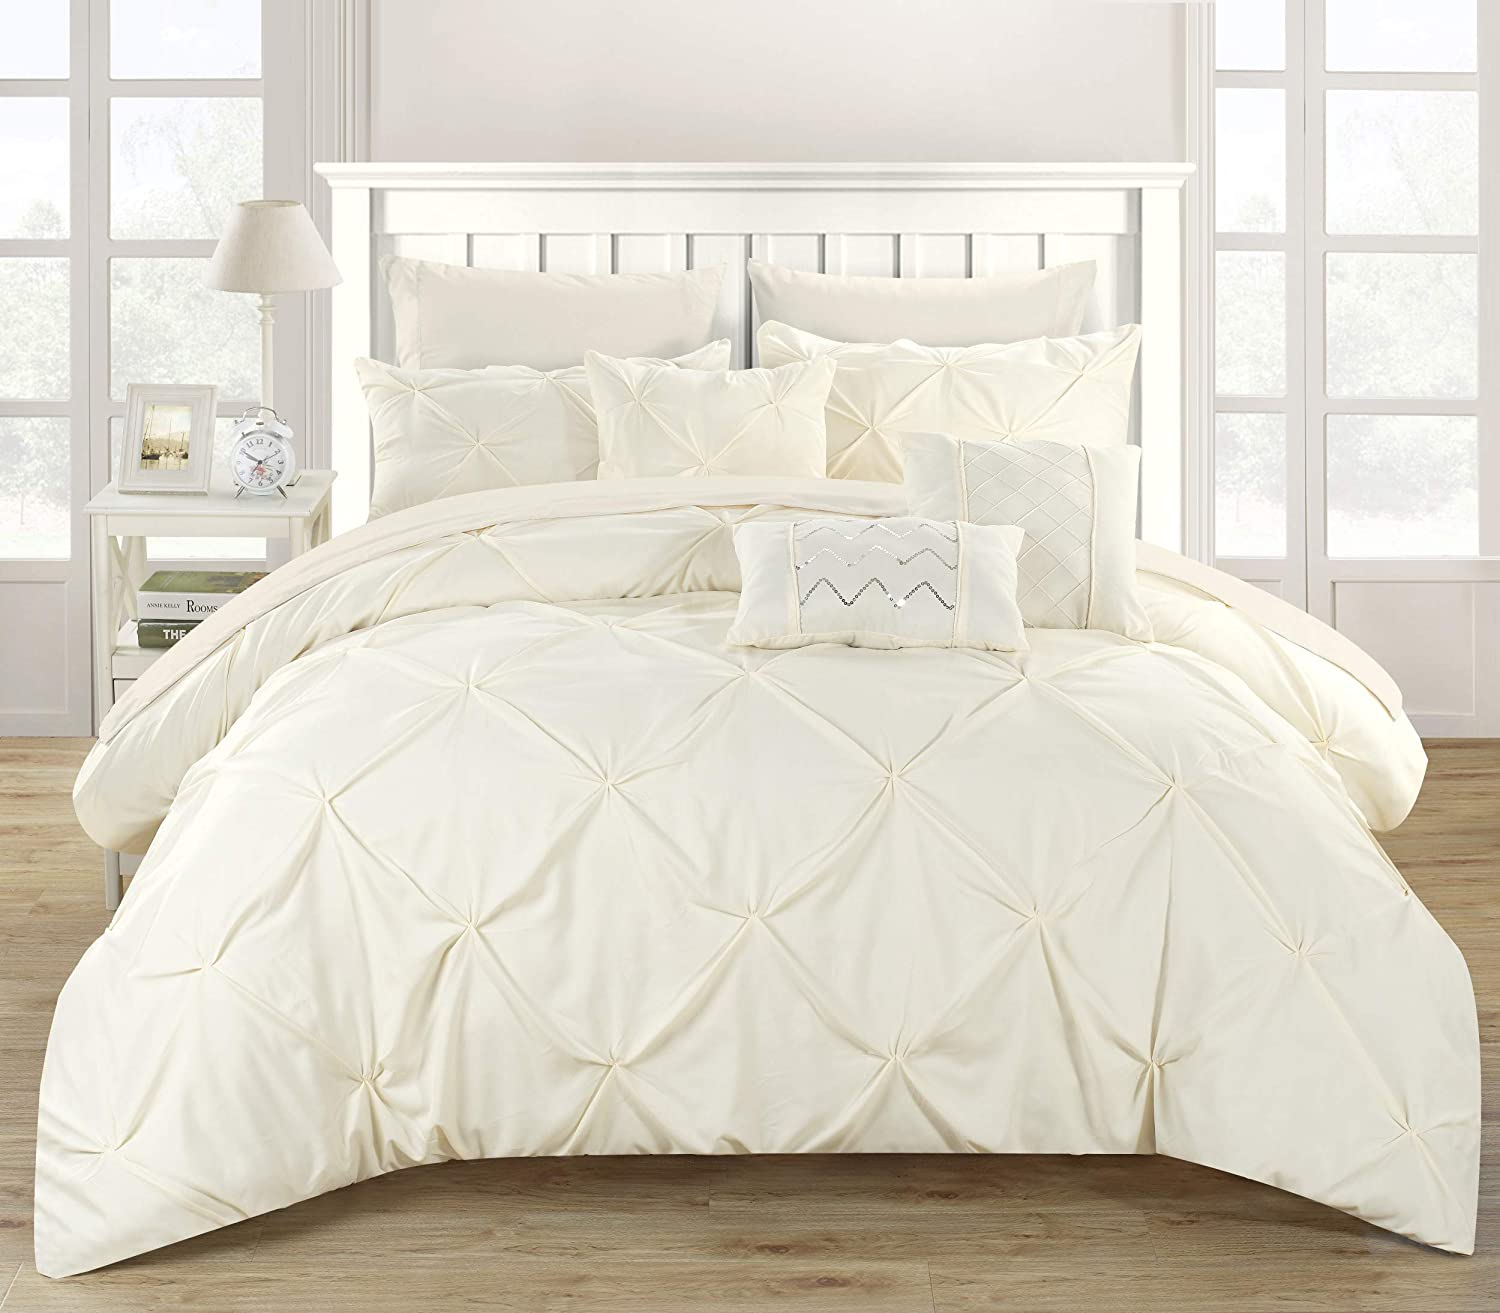 Chic Max 51% OFF Home 10 Piece Hannah Pinch com pleated and Gifts ruffled Pleated